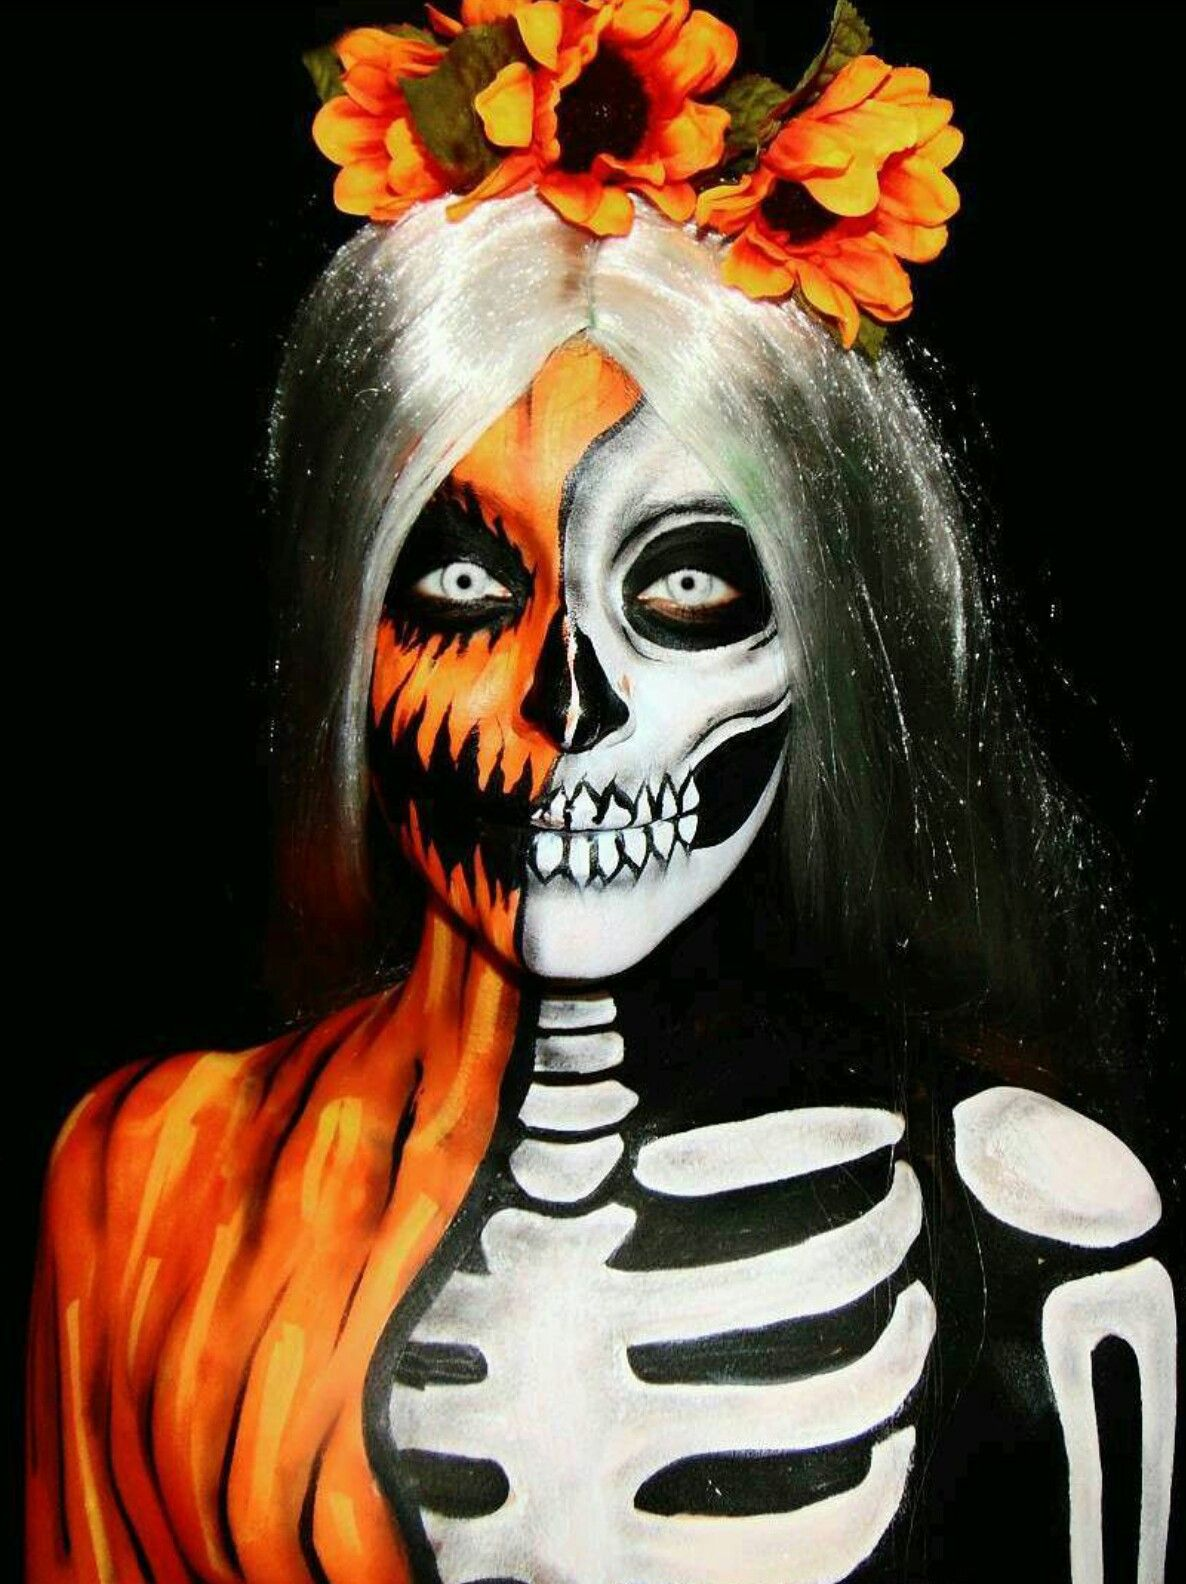 Skull pumpkin face paint Amazing halloween makeup